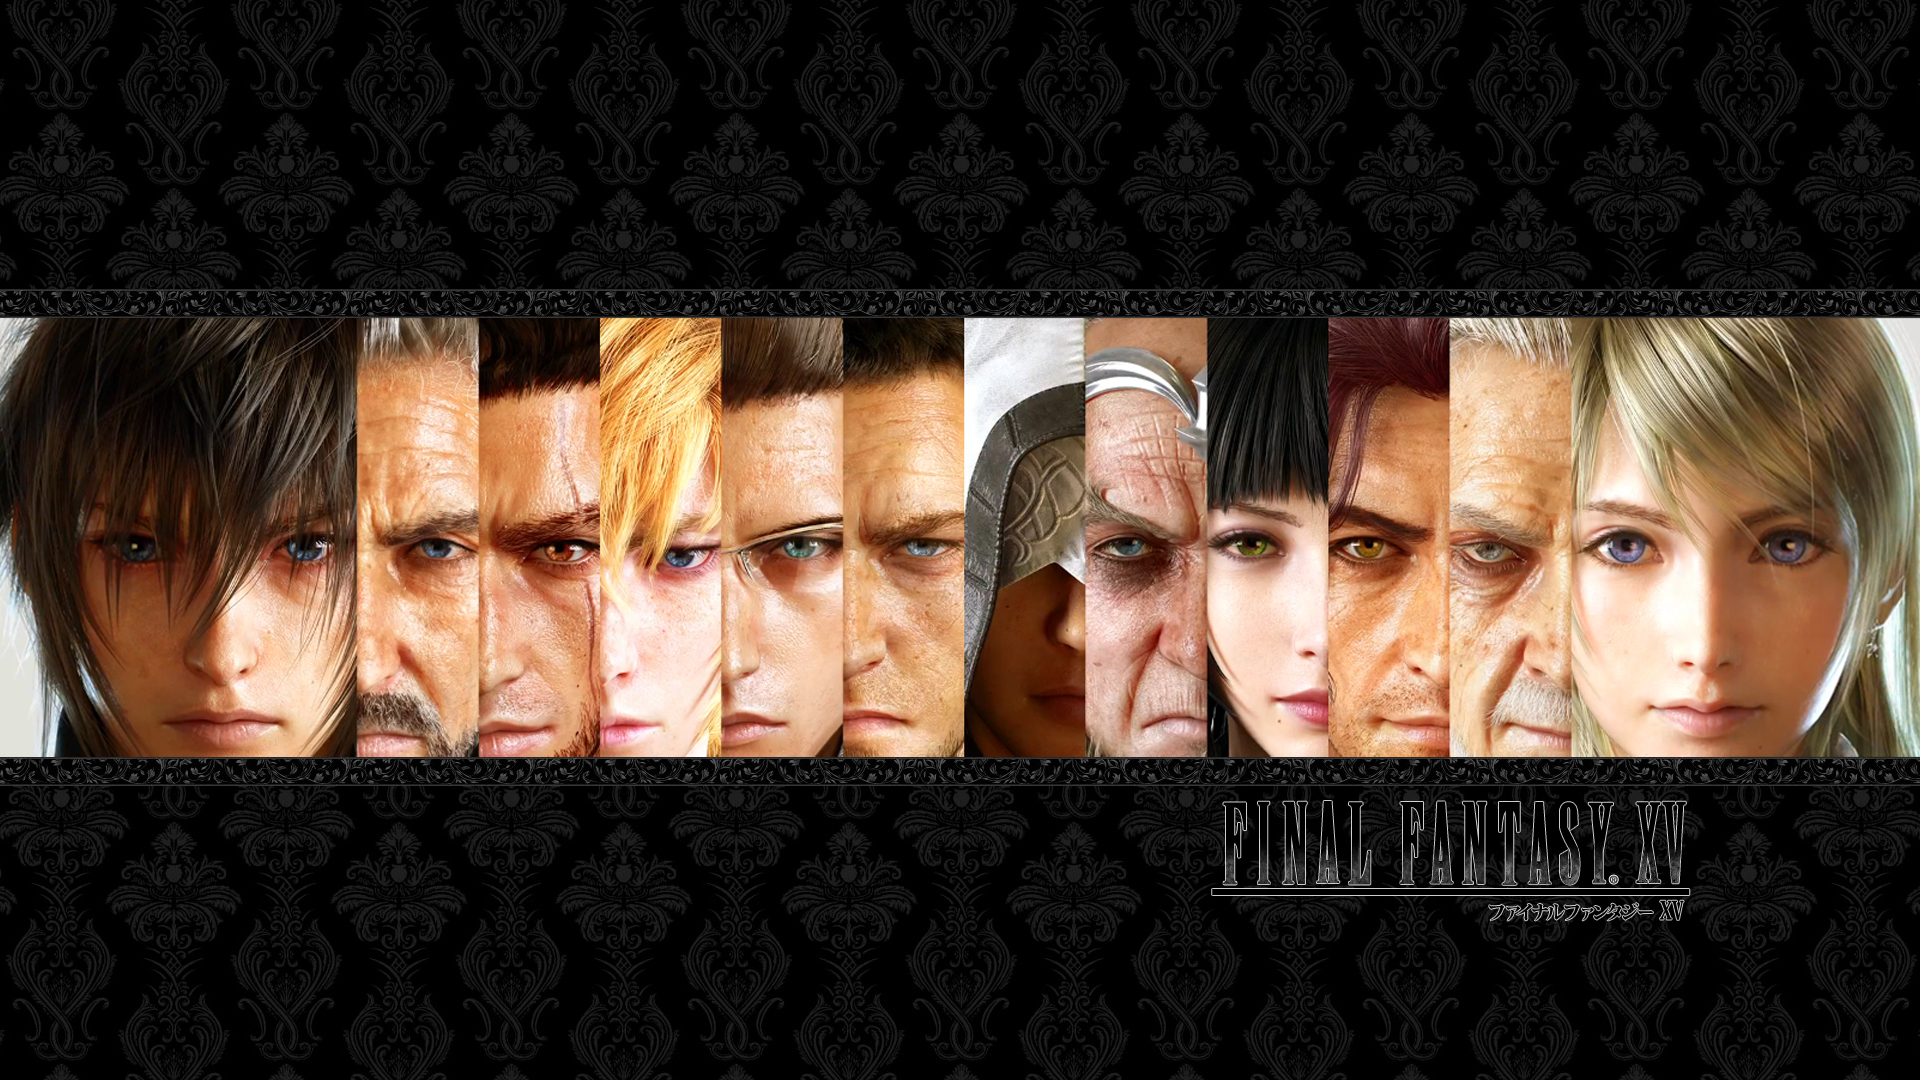 Final Fantasy Xv Wallpaper V2 By Visionstudio On Deviantart